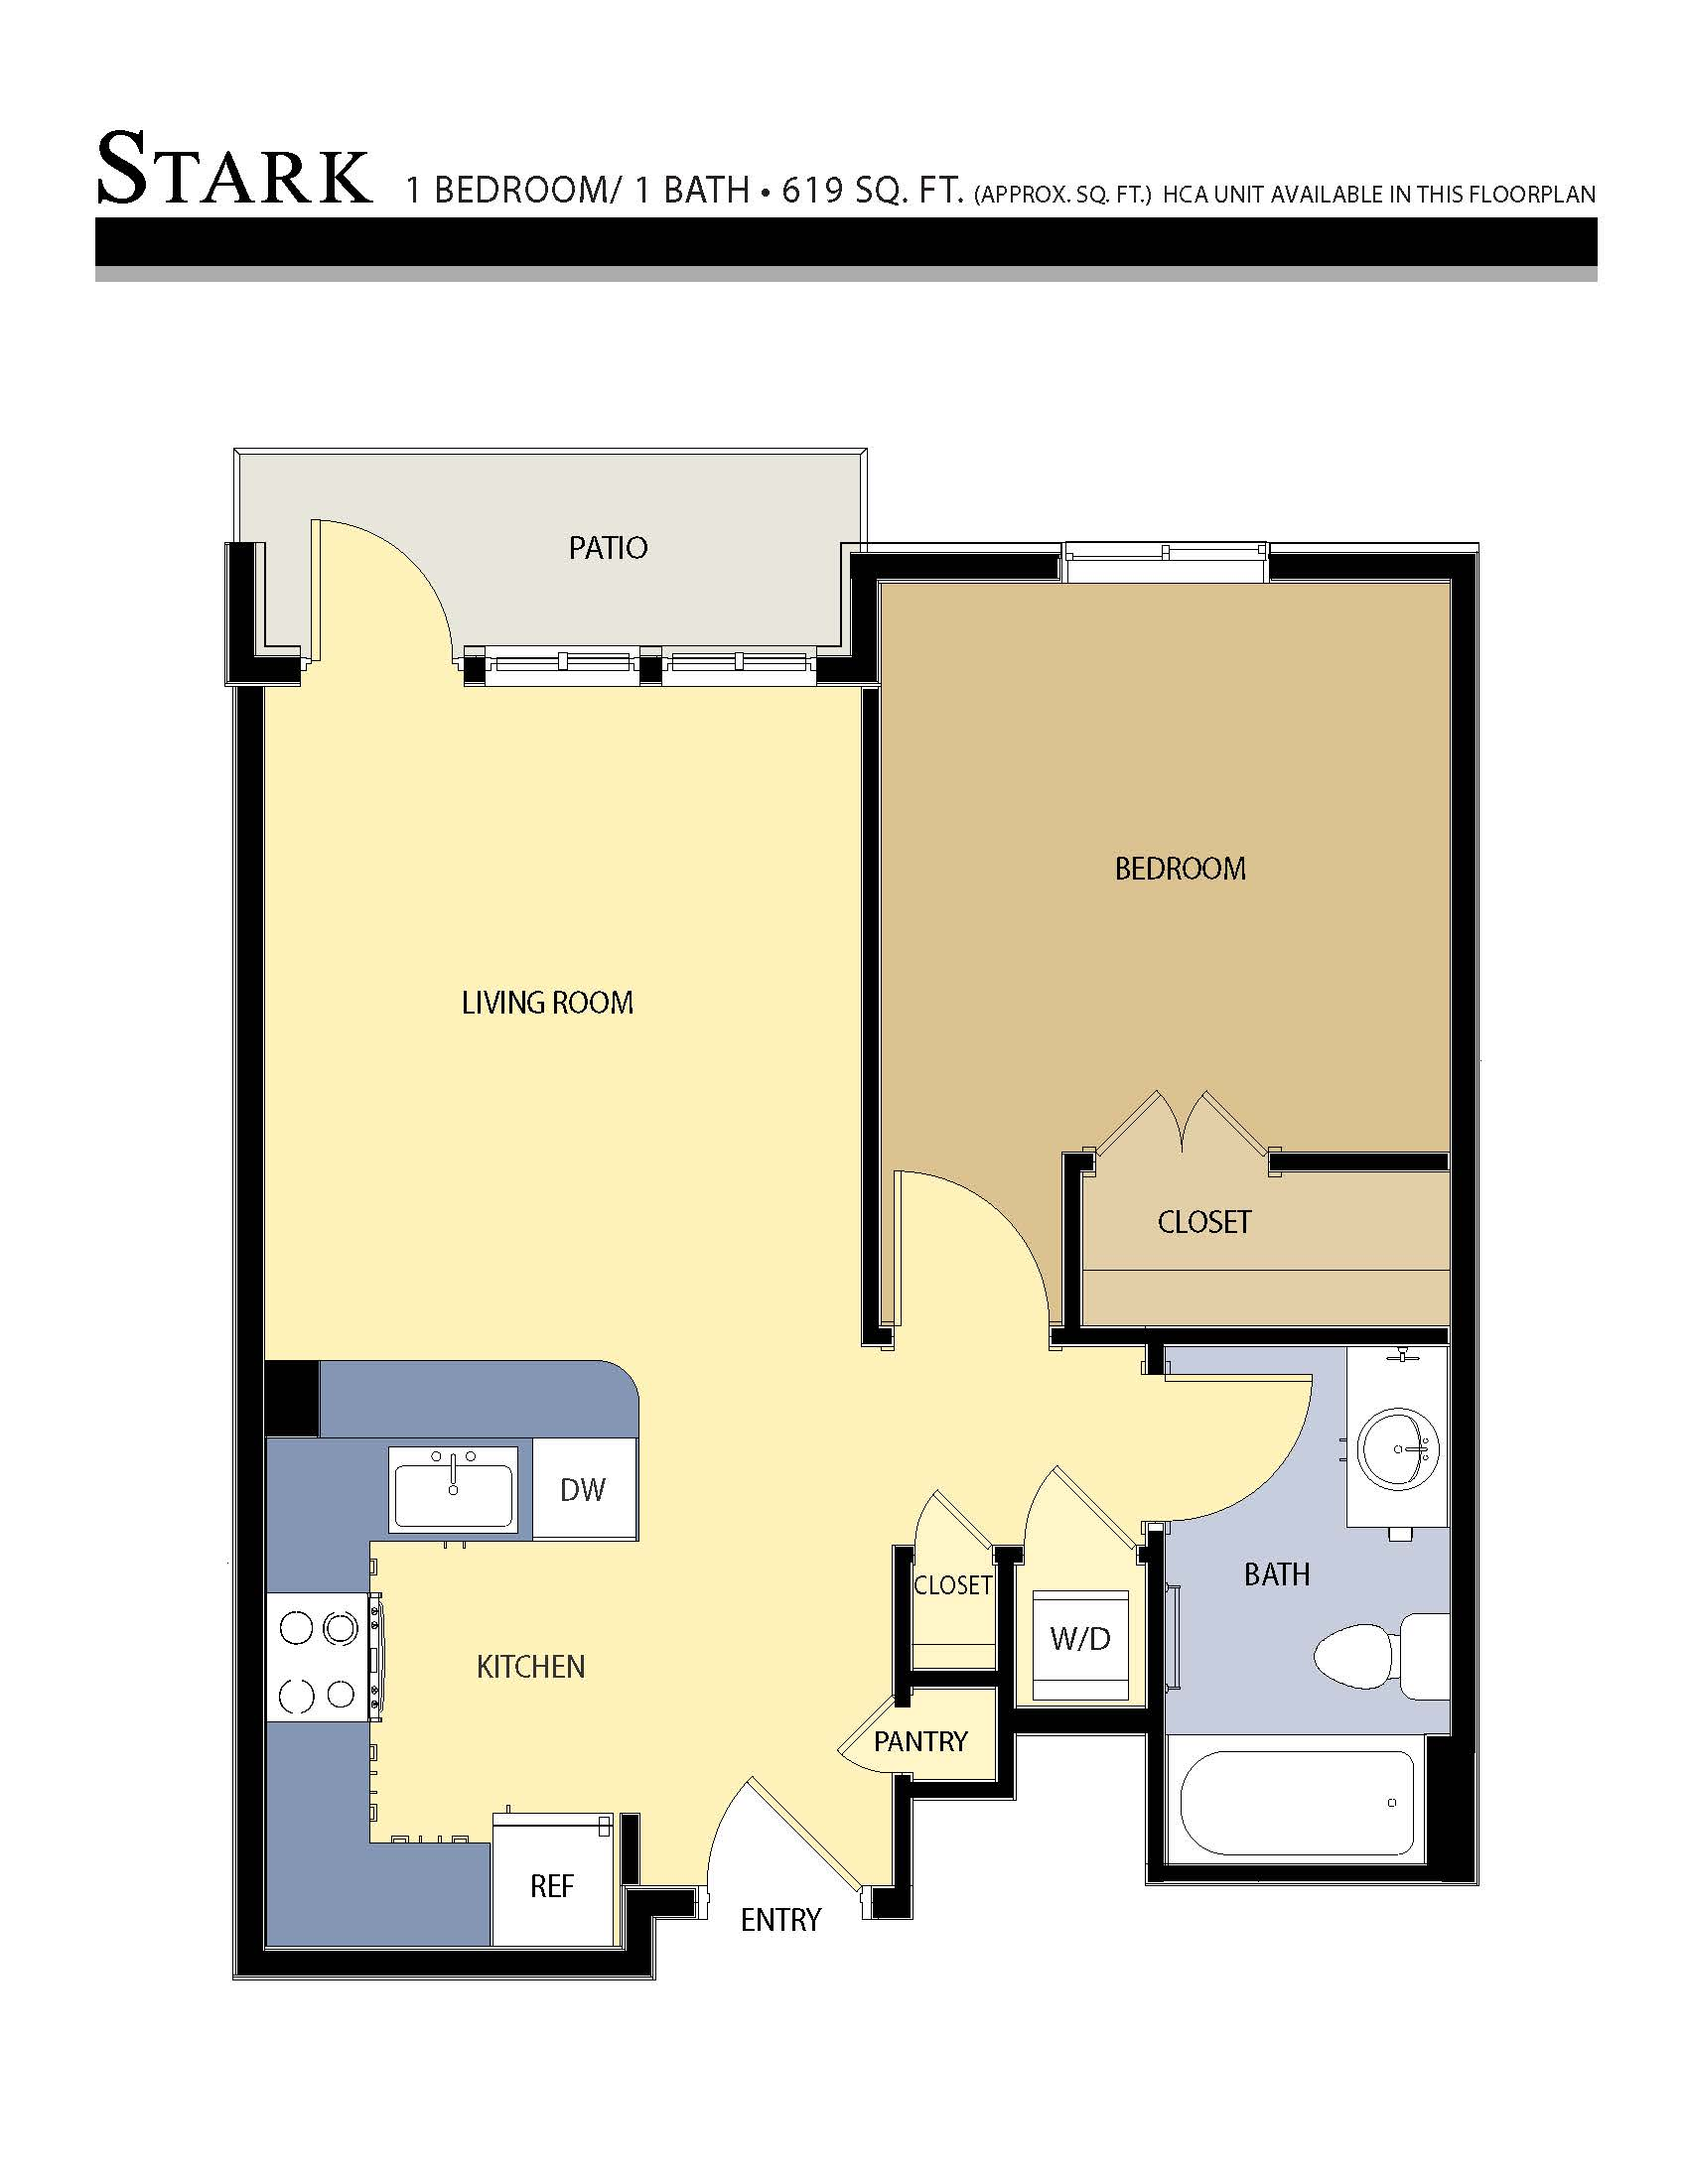 Stark floor plan - 1 Bed / 1 Bath (619 Sq Ft)